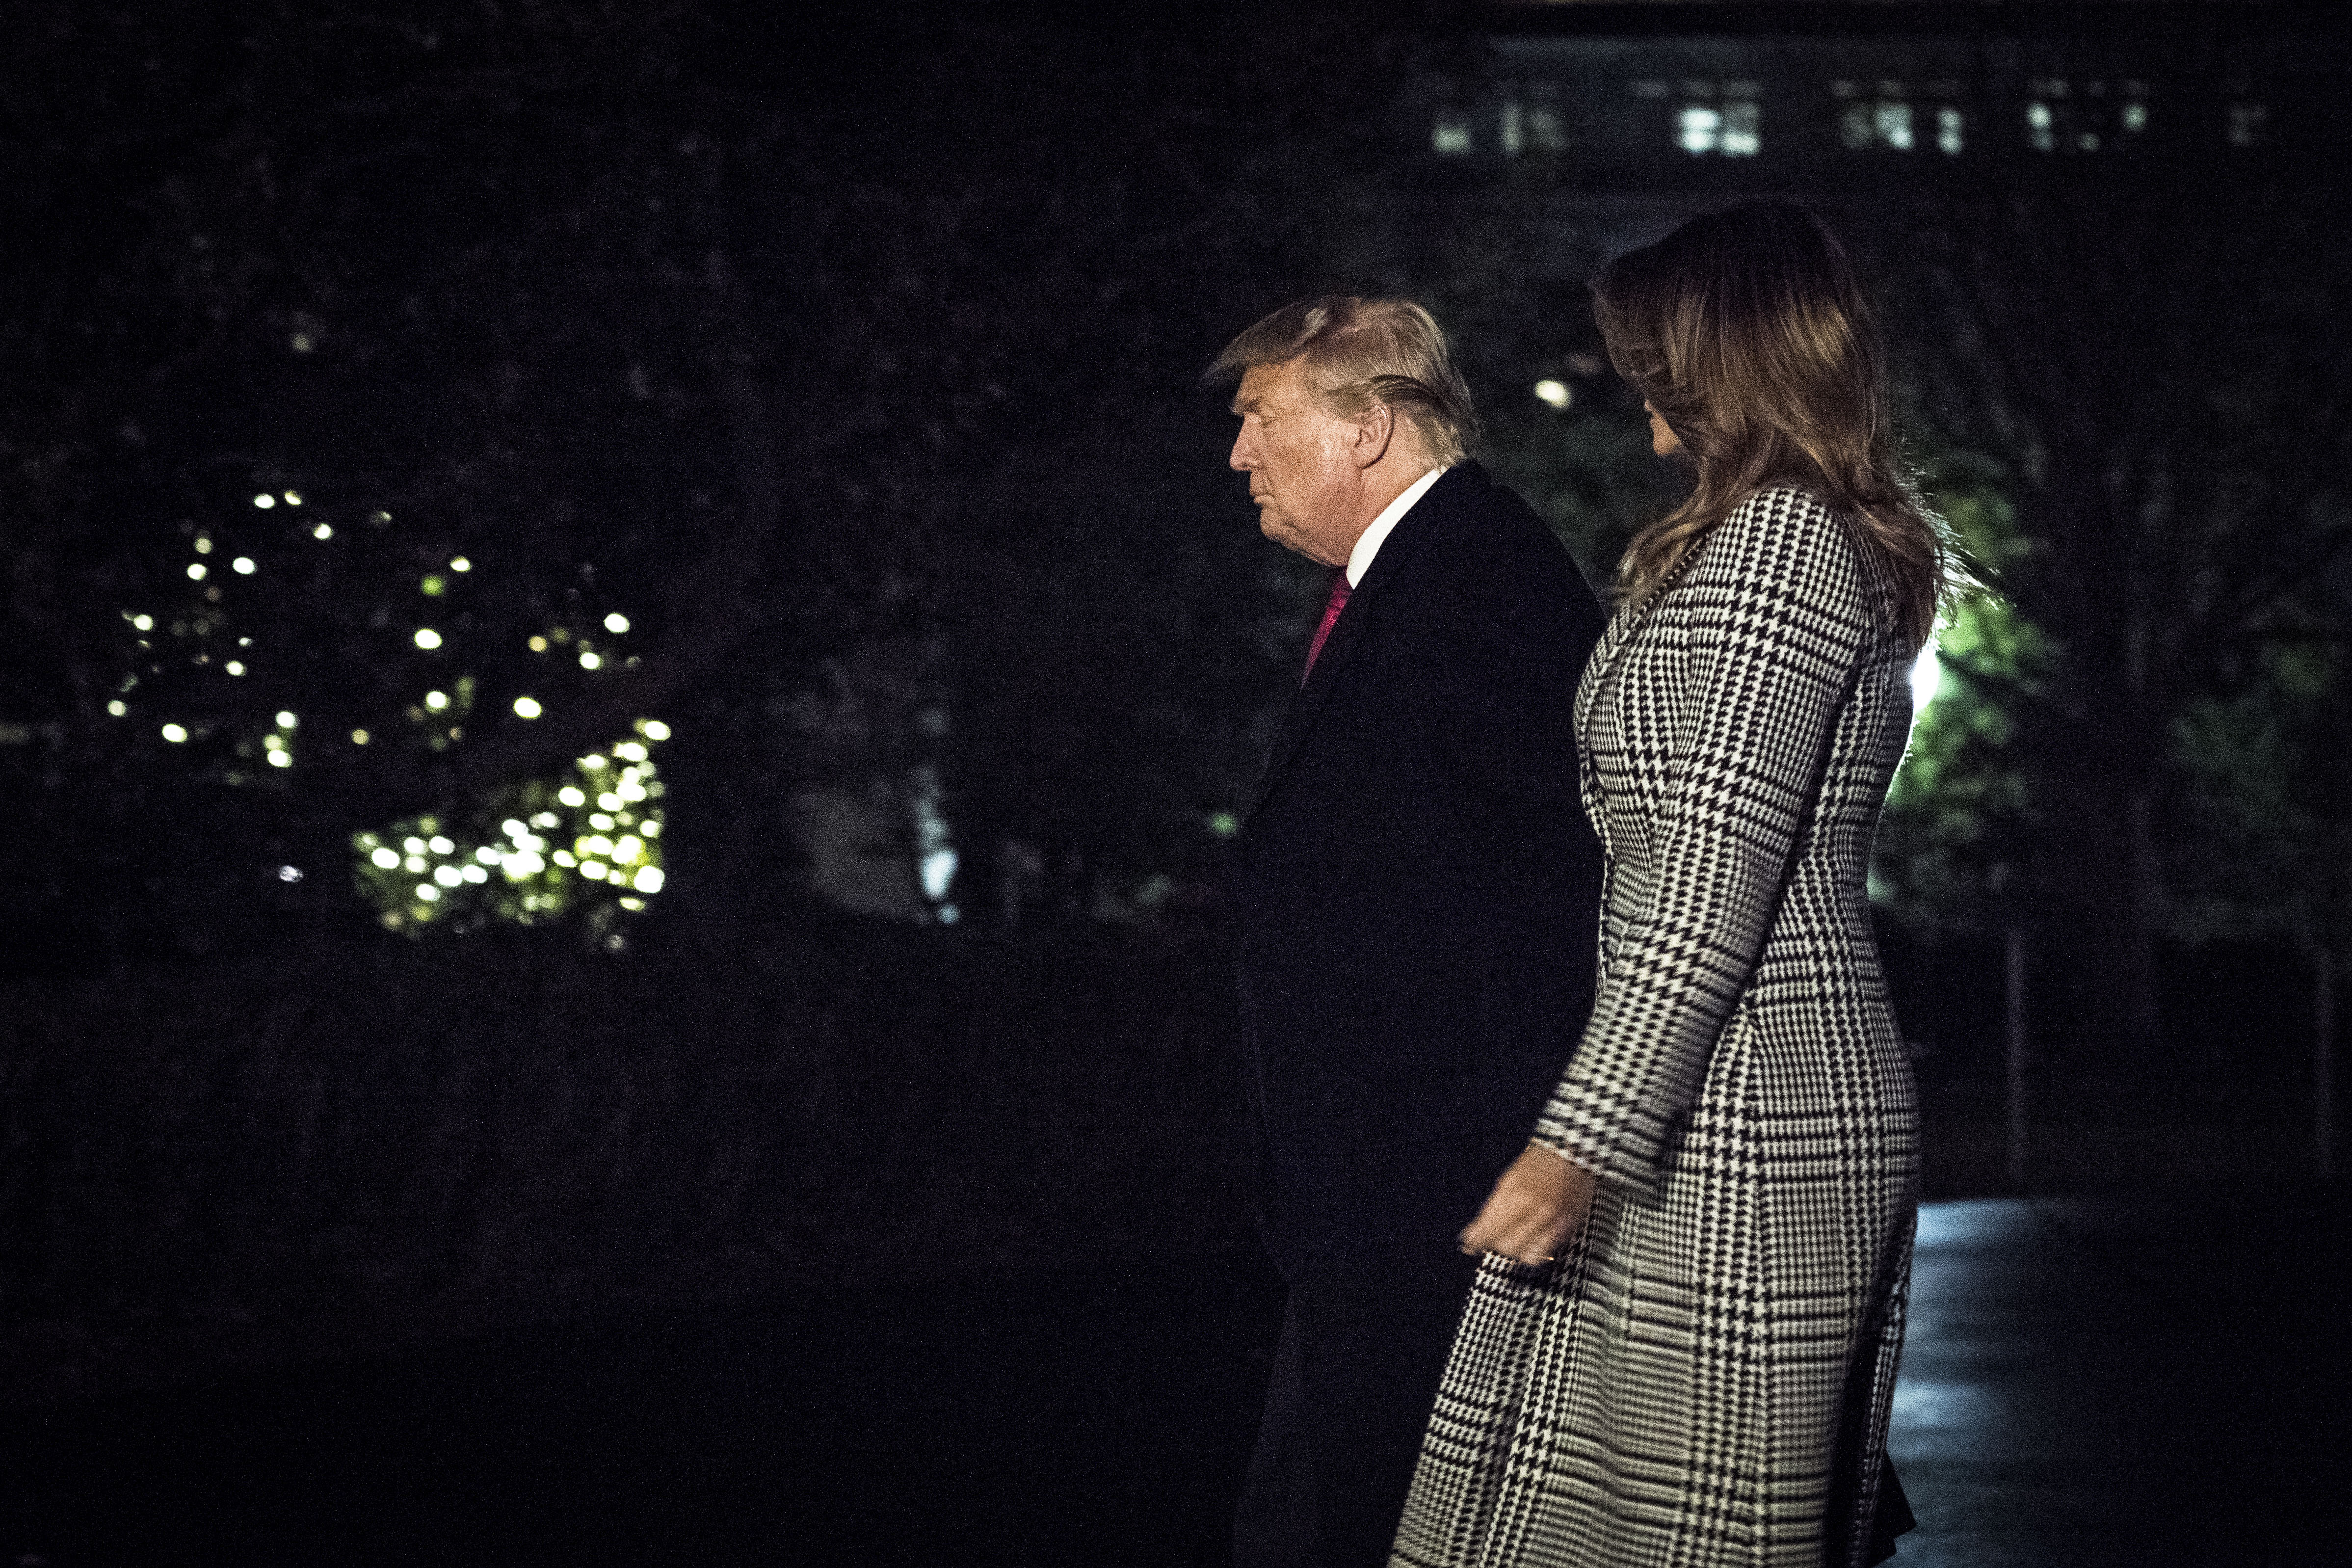 US President Donald Trump and first lady Melania Trump arrive to the White House on December 4, 2019.